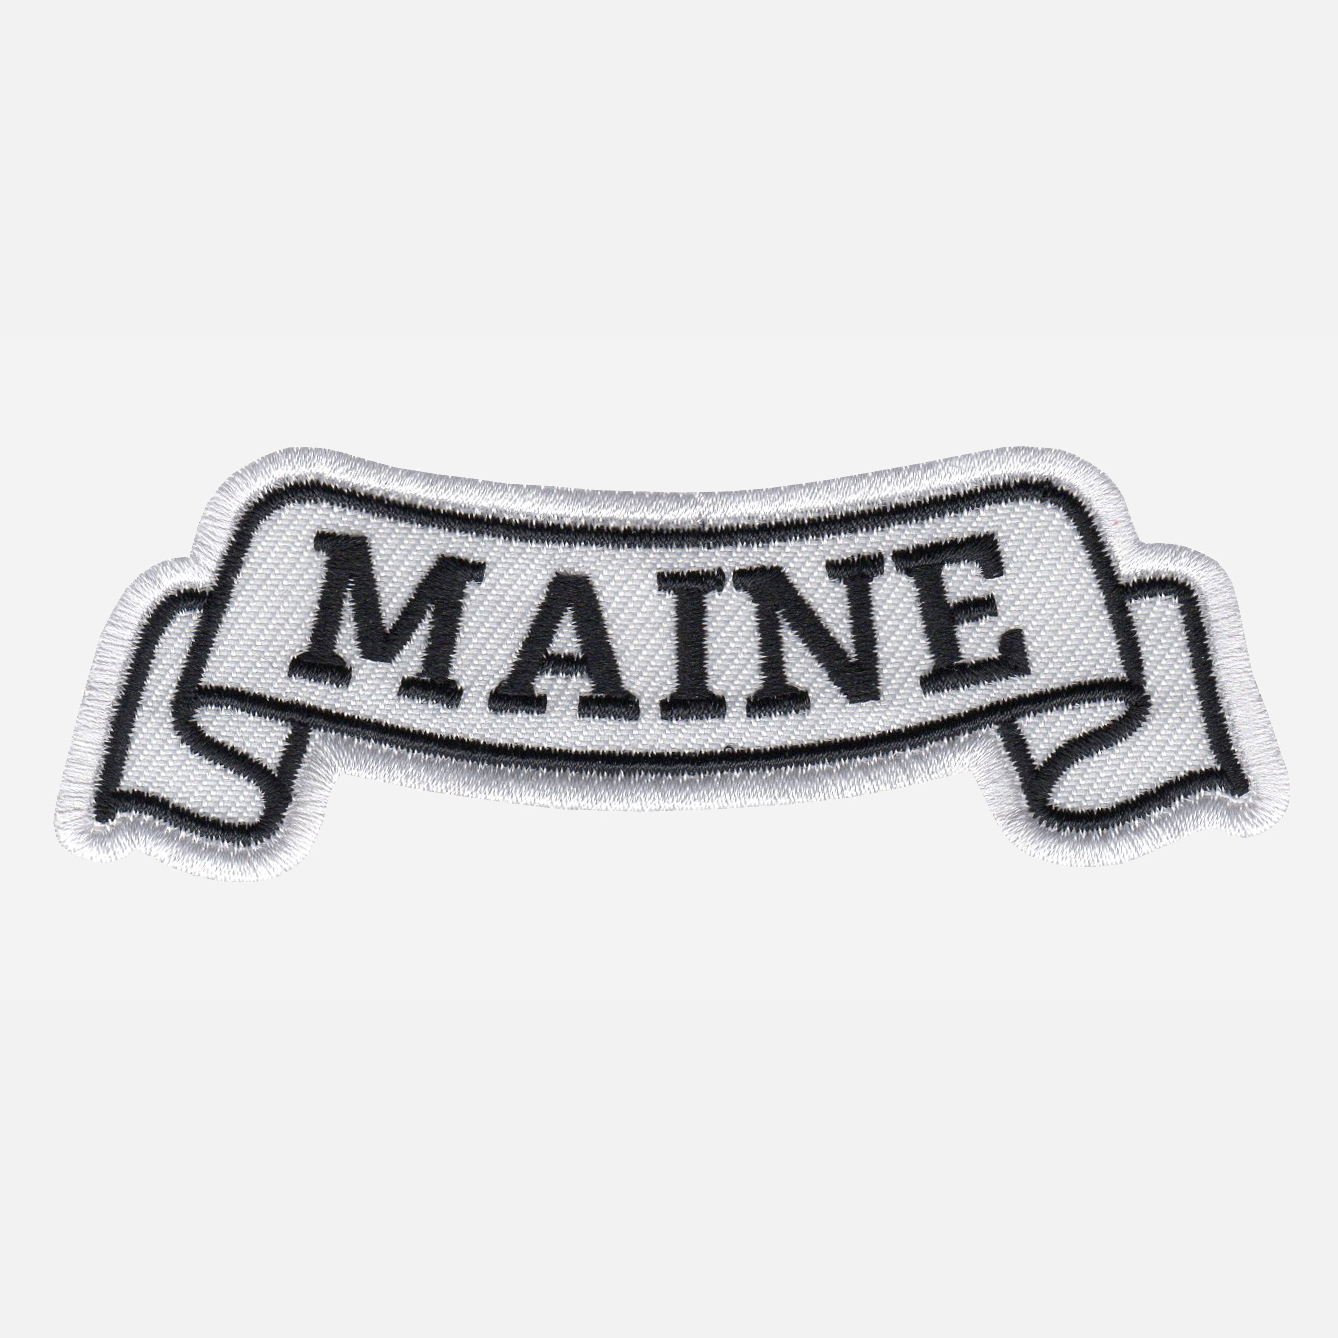 Maine Top Banner Embroidered Biker Vest Patch